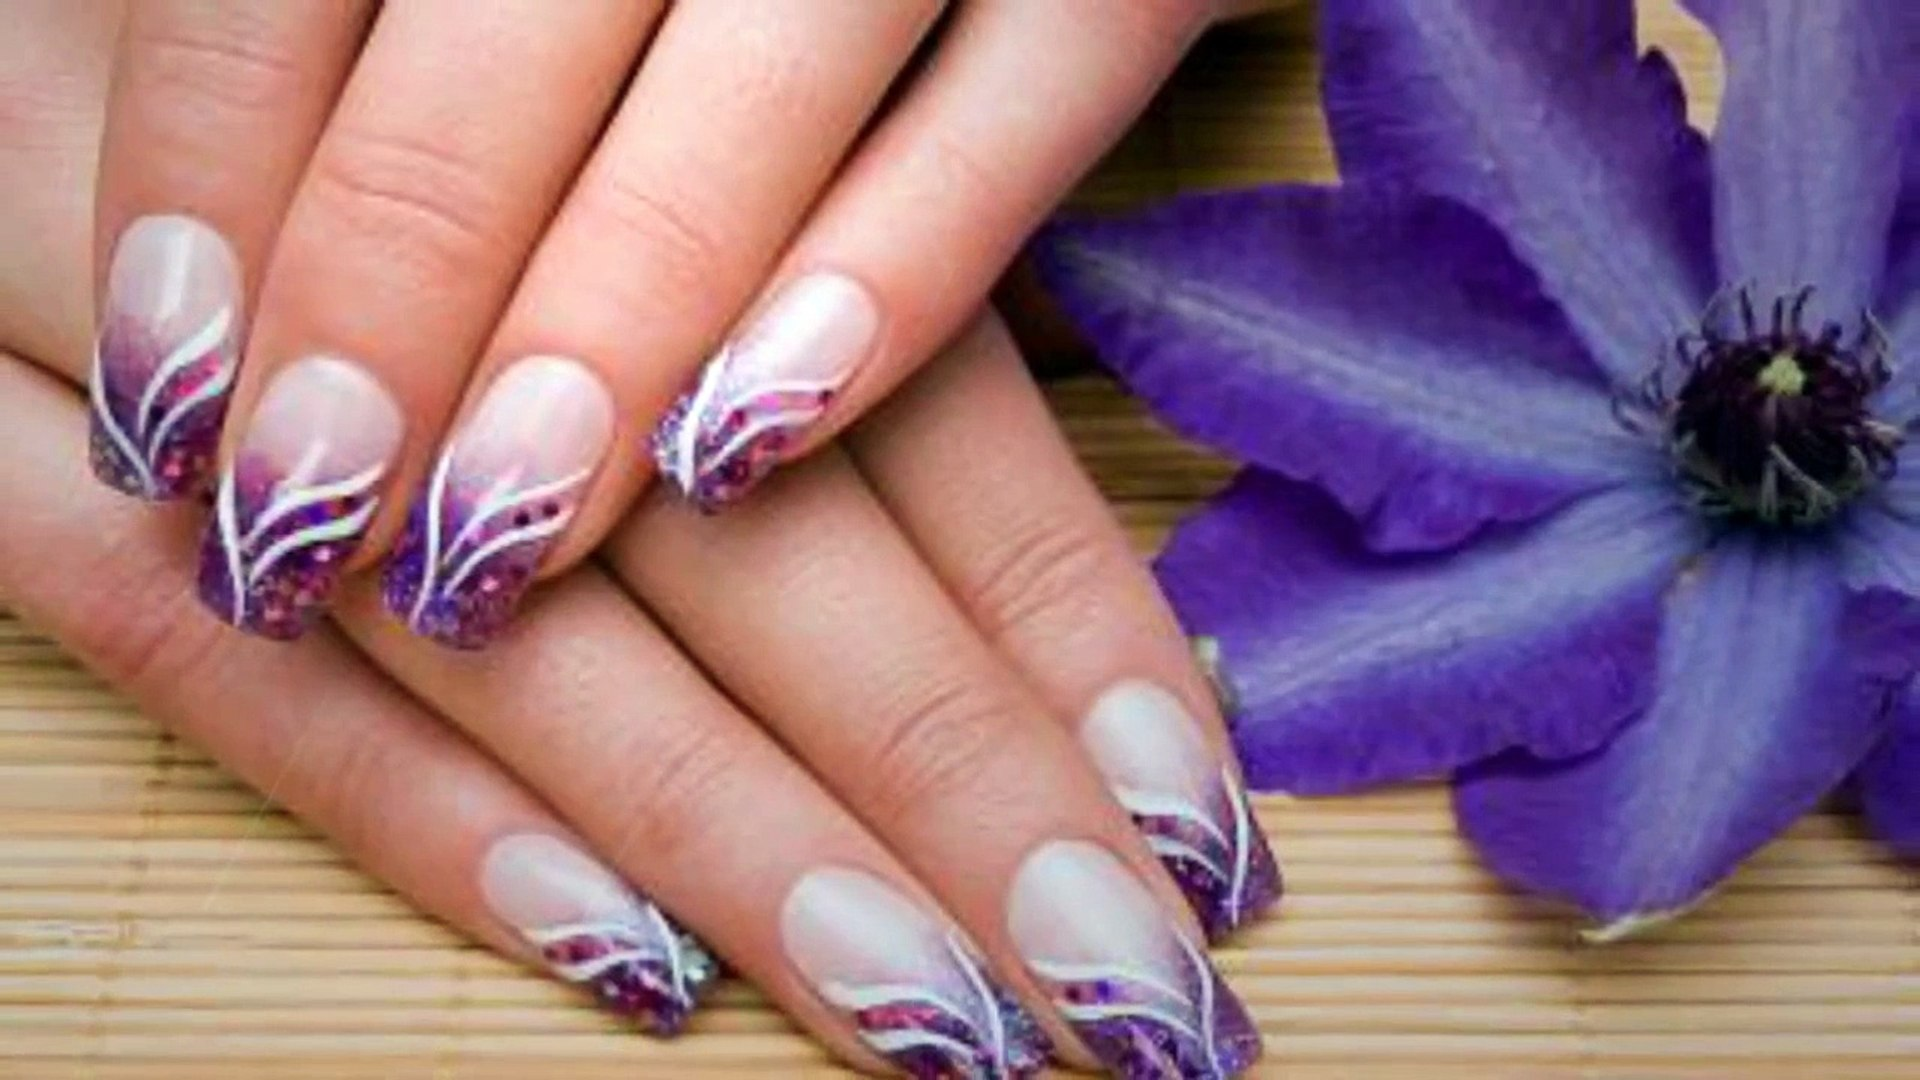 Sarabeautycorner Diy Nail Art Tools With 5 Easy Nail Art Designs How To Paint Your Nails At Home Video Dailymotion,Lucketts Design House